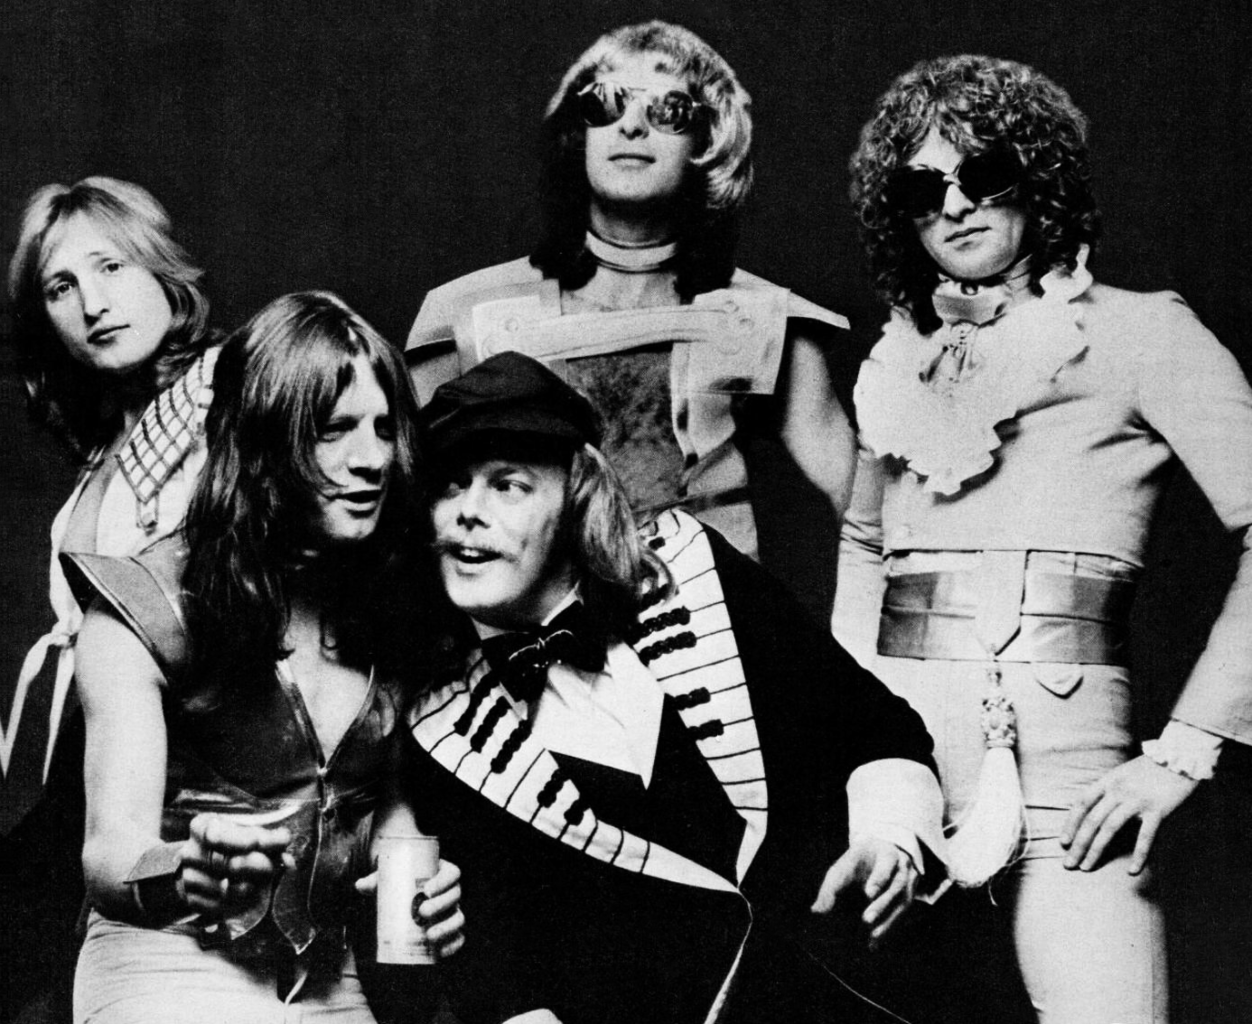 File:Mott the Hoople (1974).png